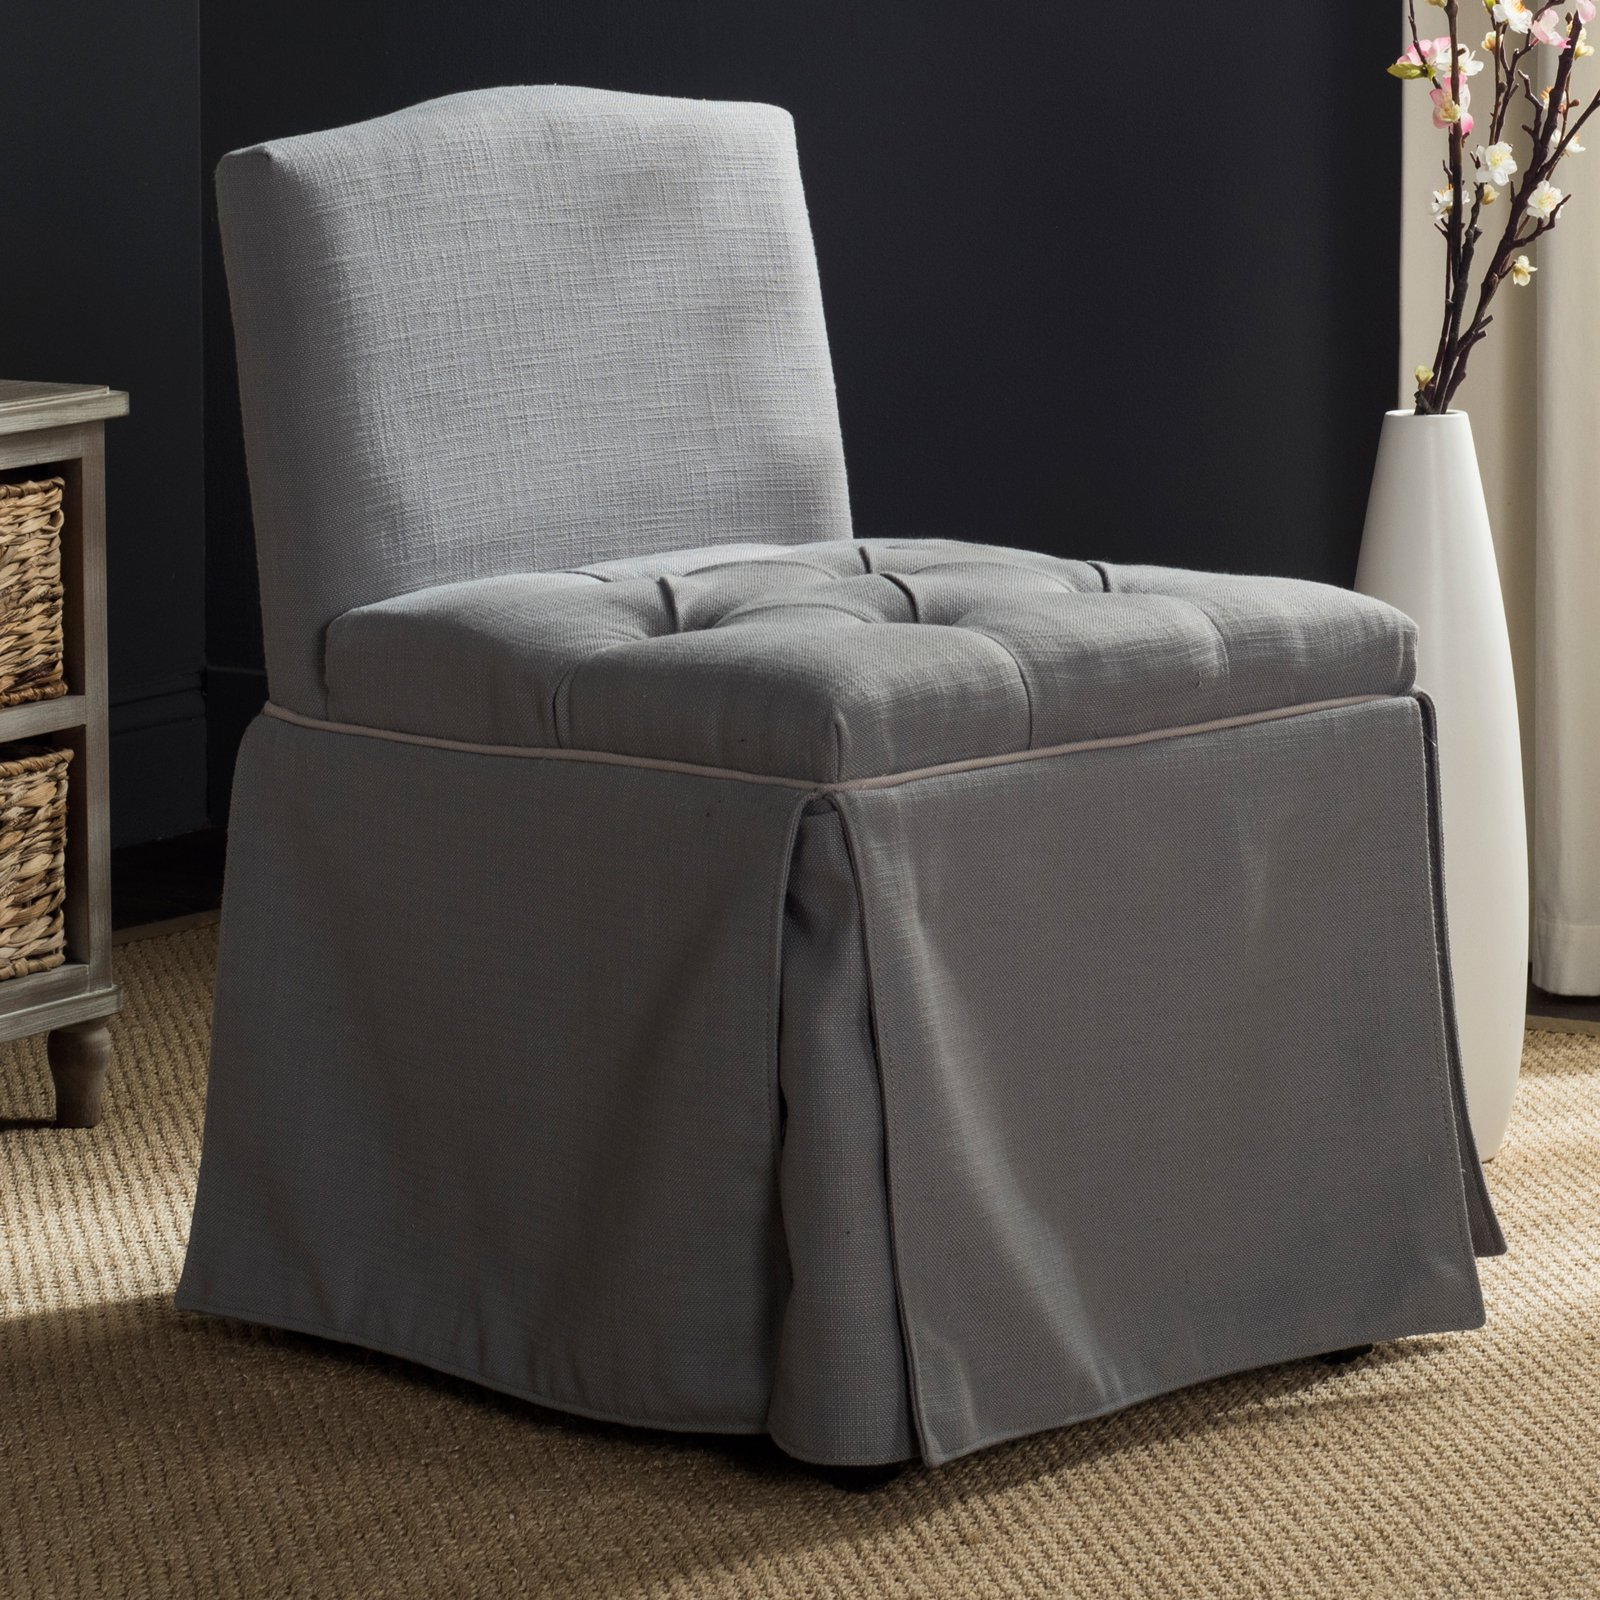 Safavieh Betsy Vanity Chair, Multiple Colors